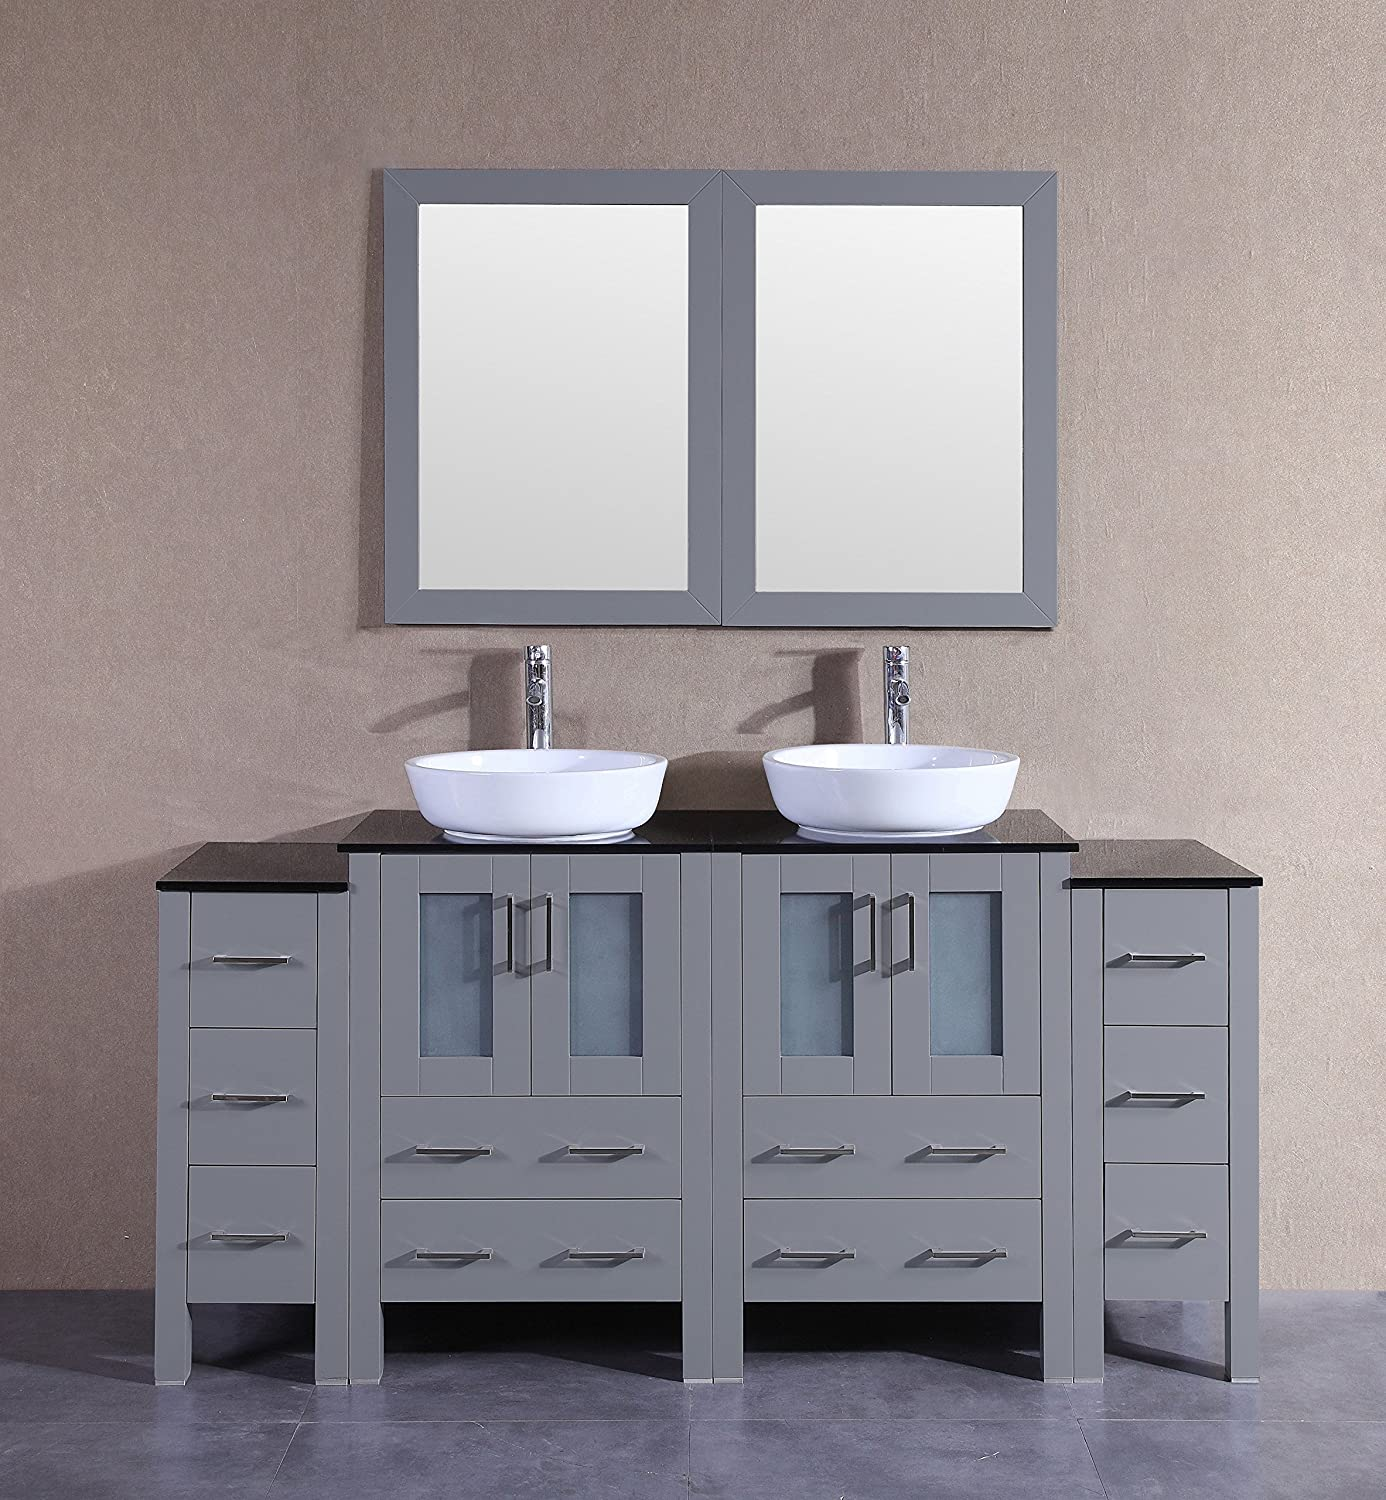 Bosconi Agr224bwlps 48 Double Vanity Set With Oval Vessel Sinks